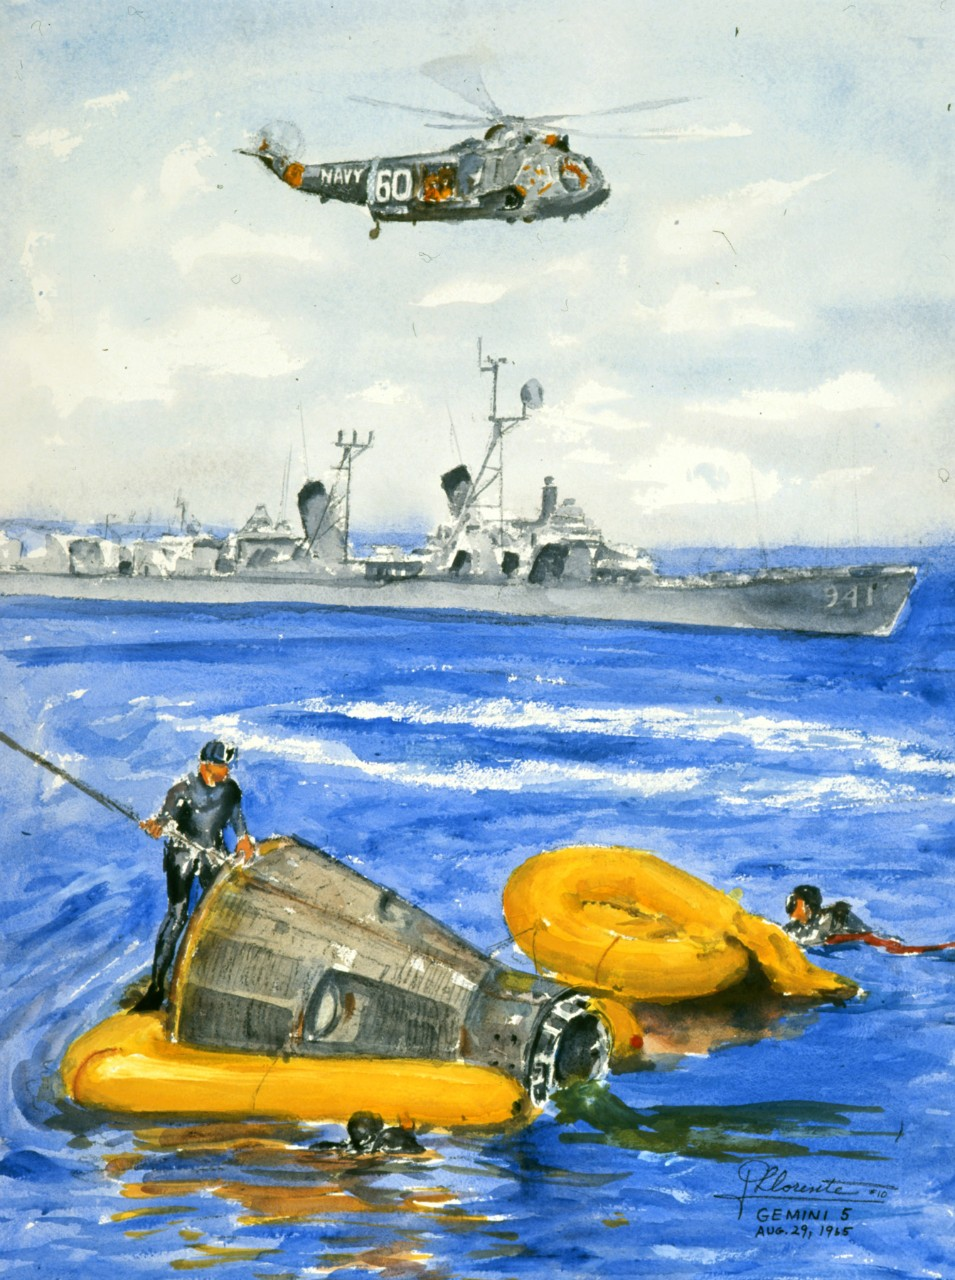 The recovery of a space capsule with a ship in the background and a helicopter flying over head